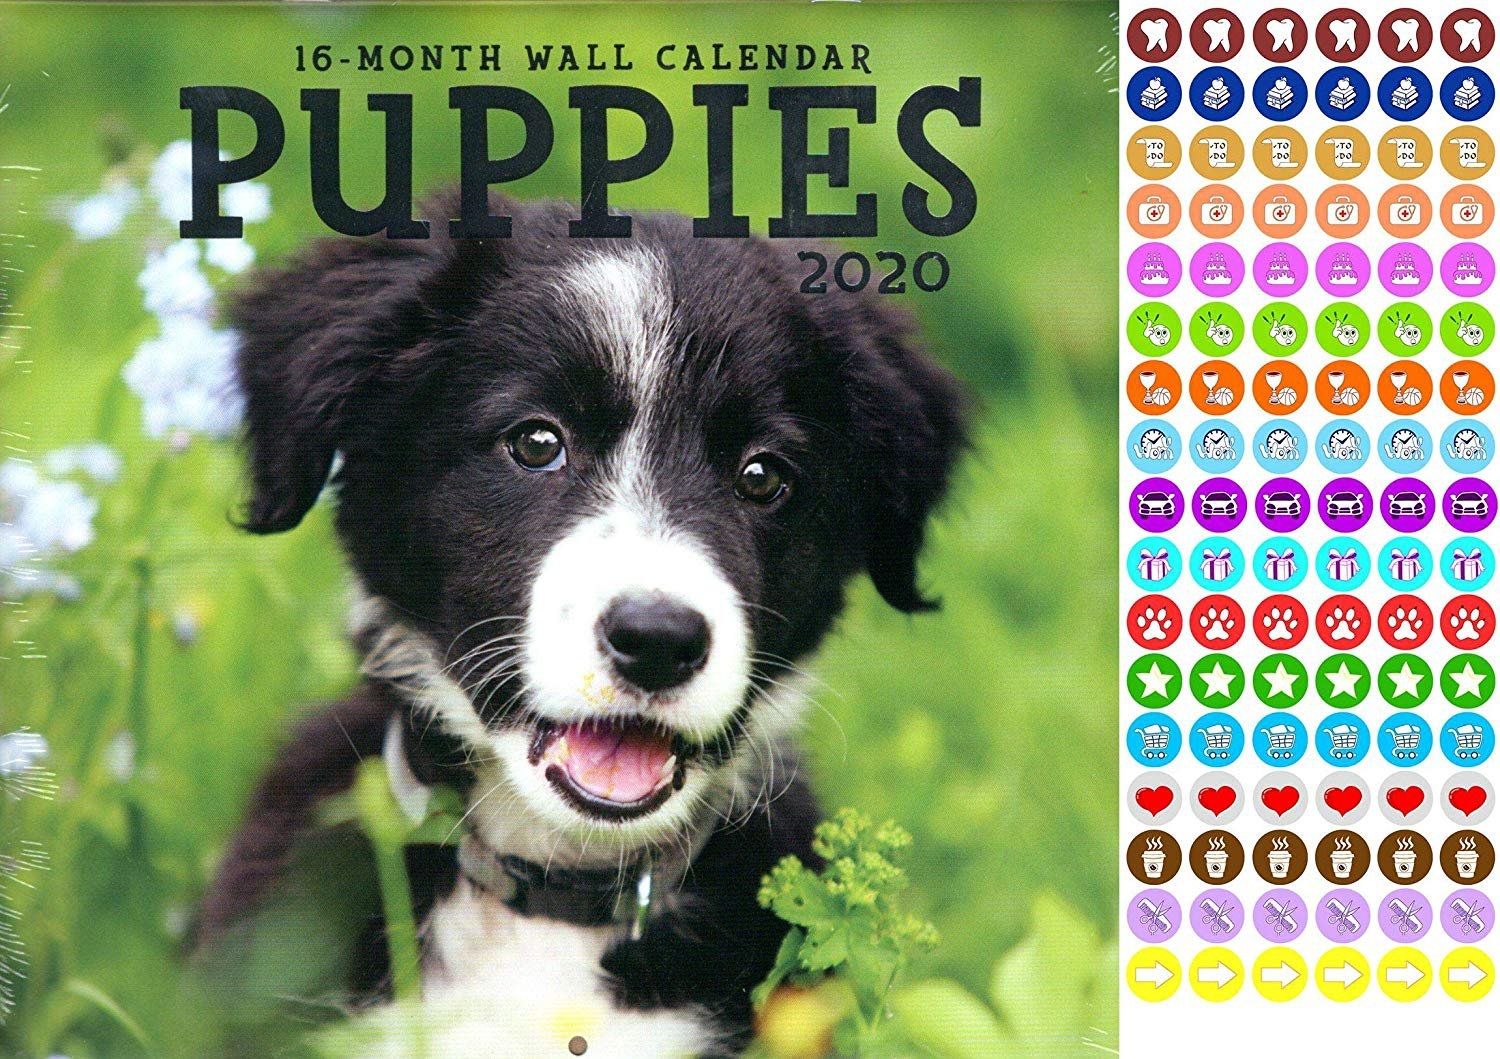 Puppies - 16 Month 2020 Wall Calendar (September 2019 - December 2020) - with 100 Reminder Stickers